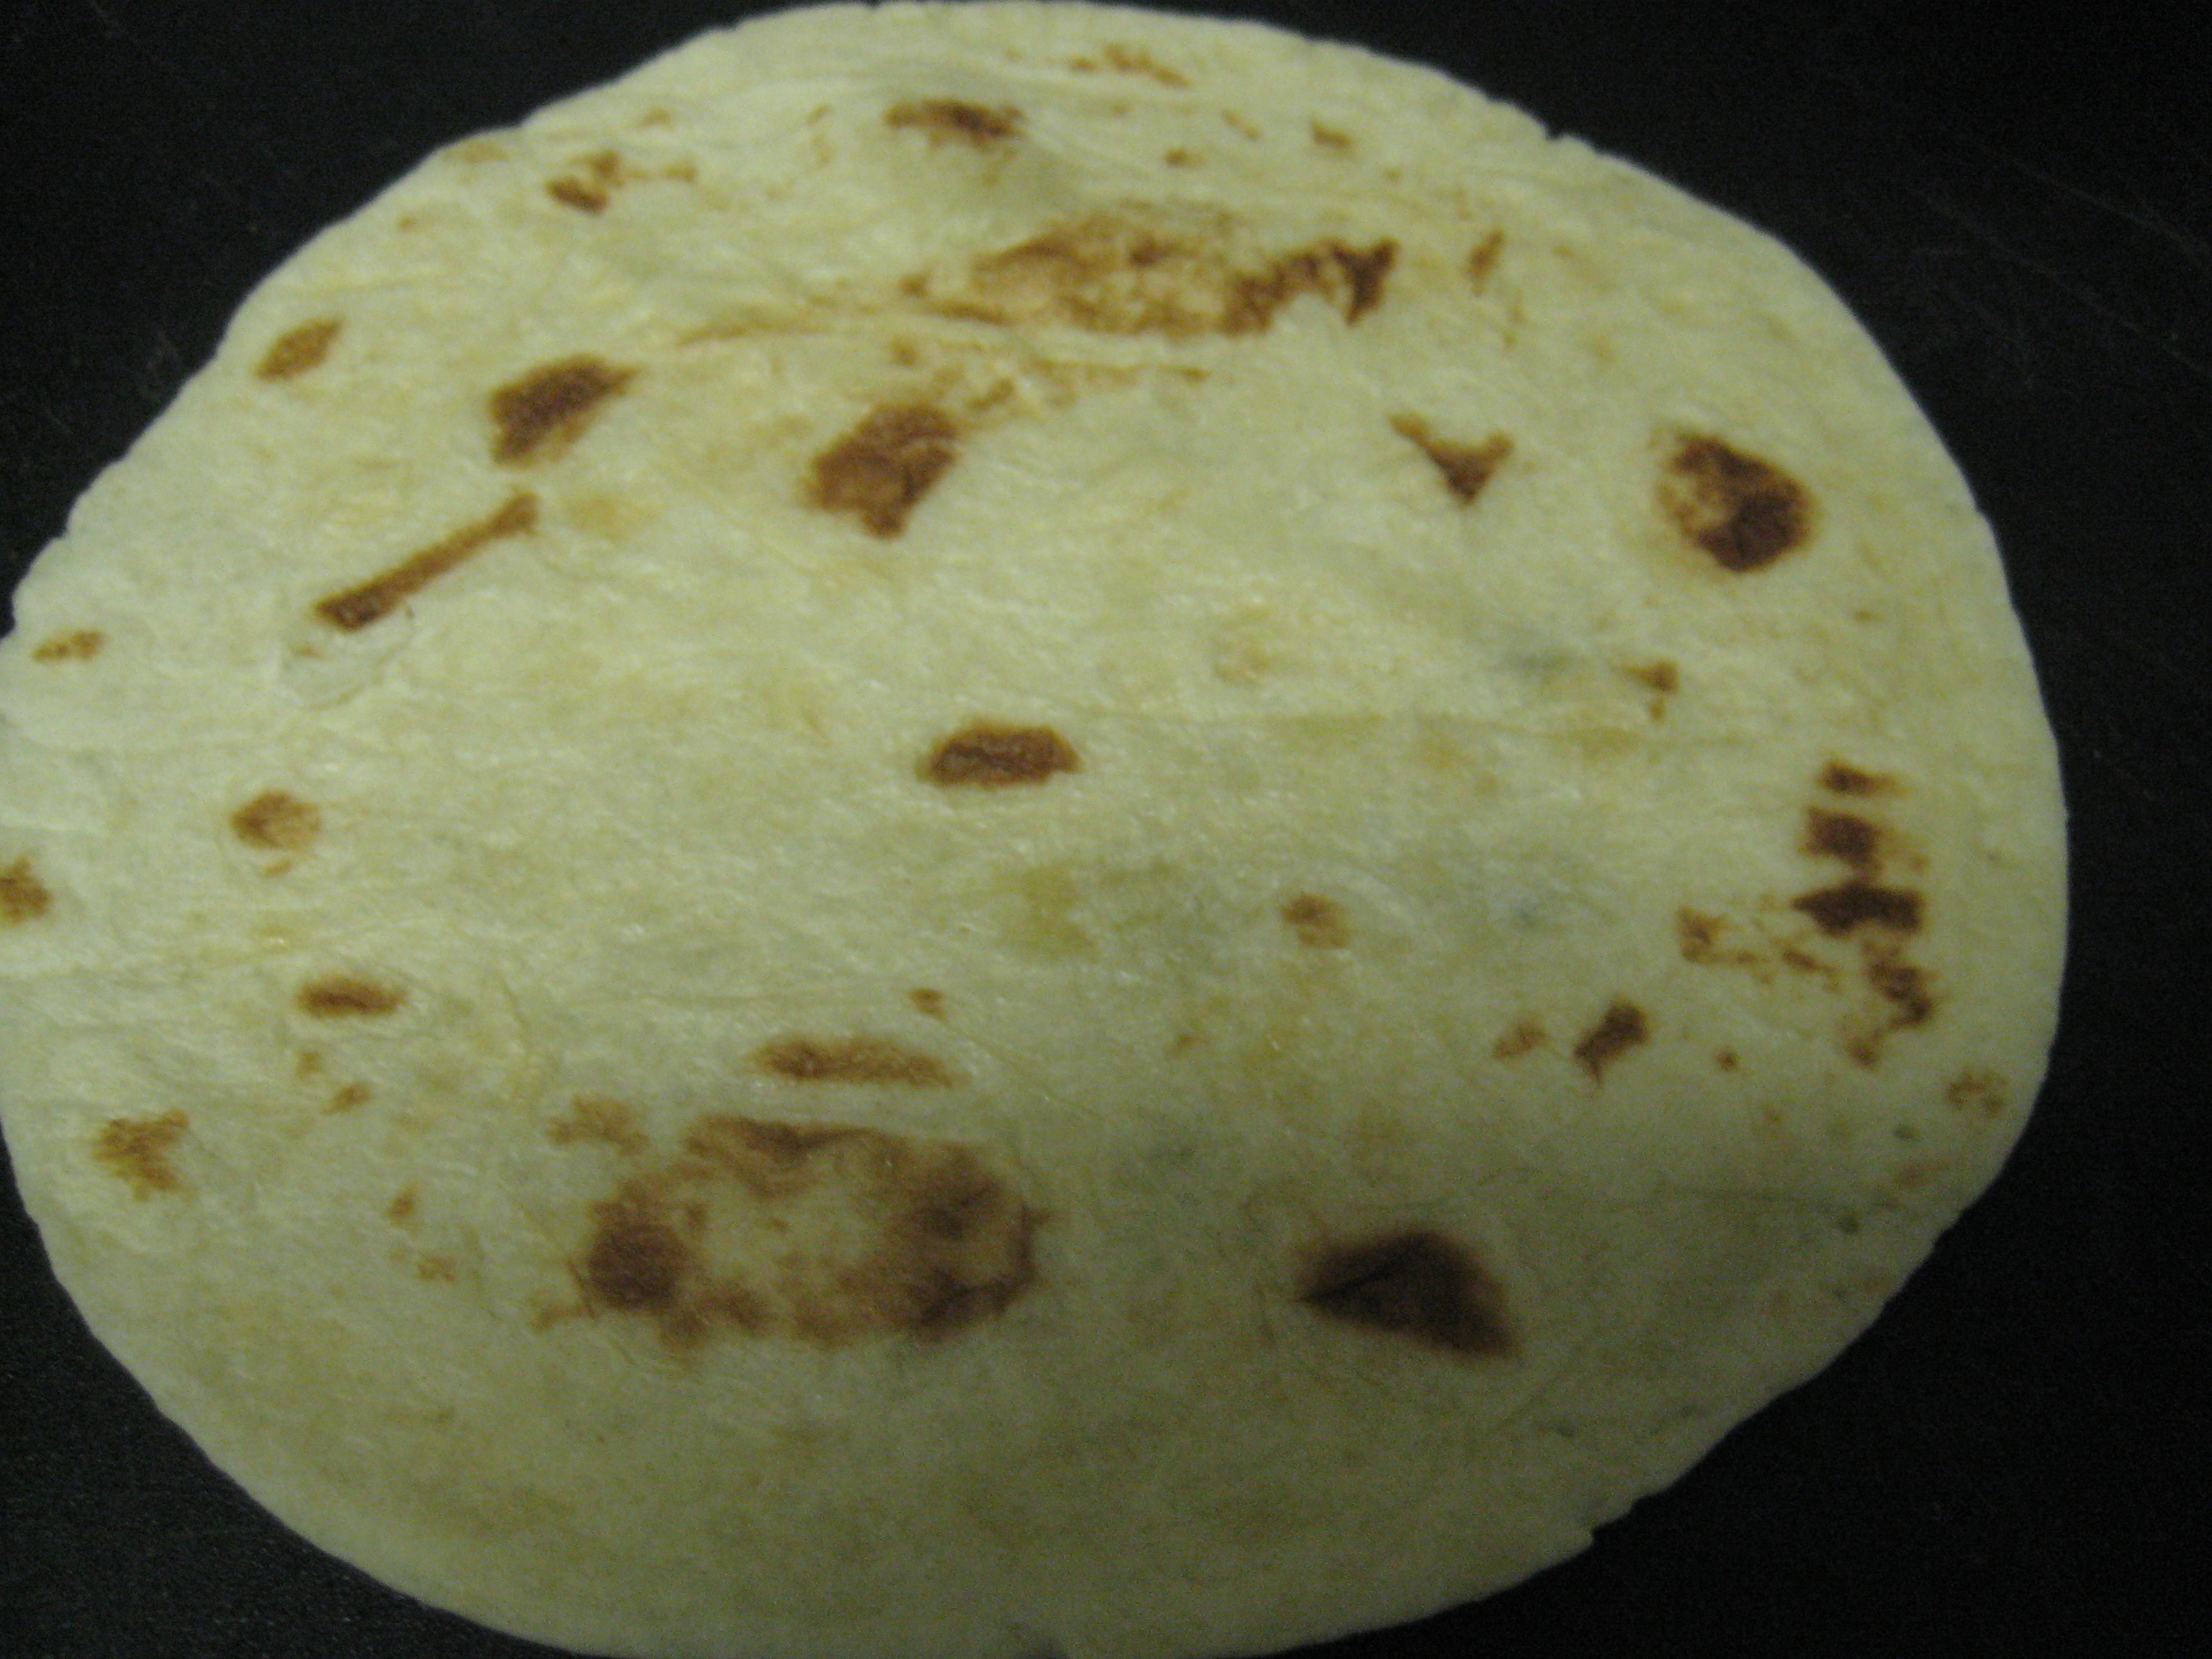 One tortilla!